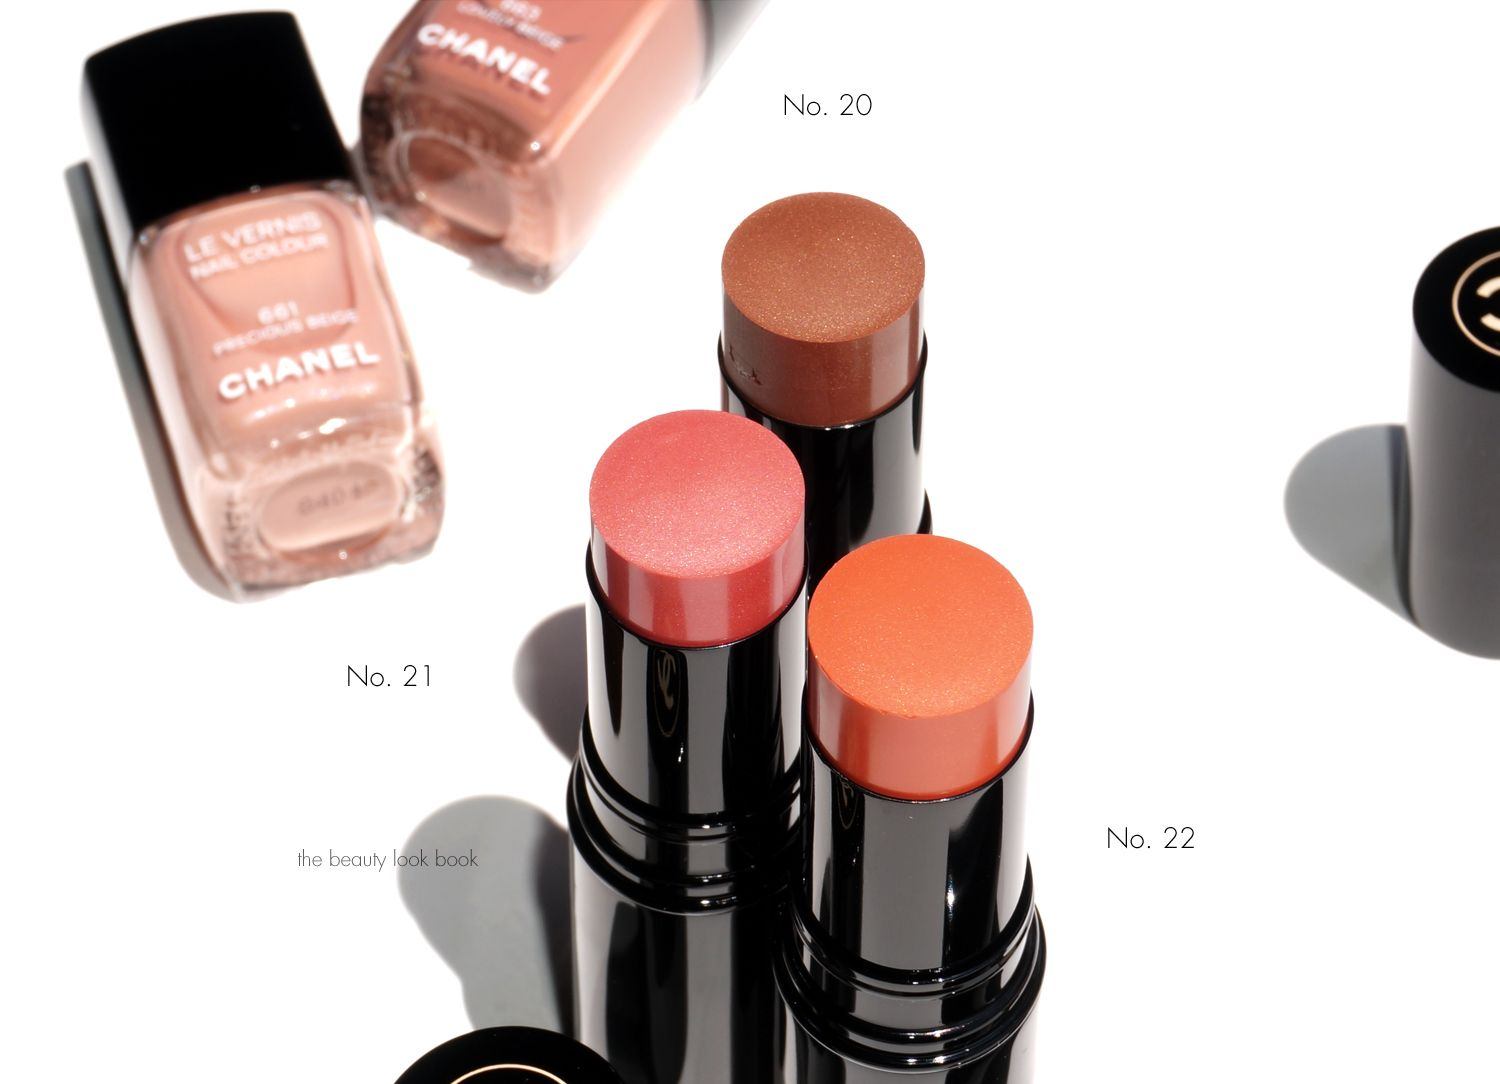 chanel les beiges blush stick - Google Search   Beauty Must-Haves ... bf325aea795